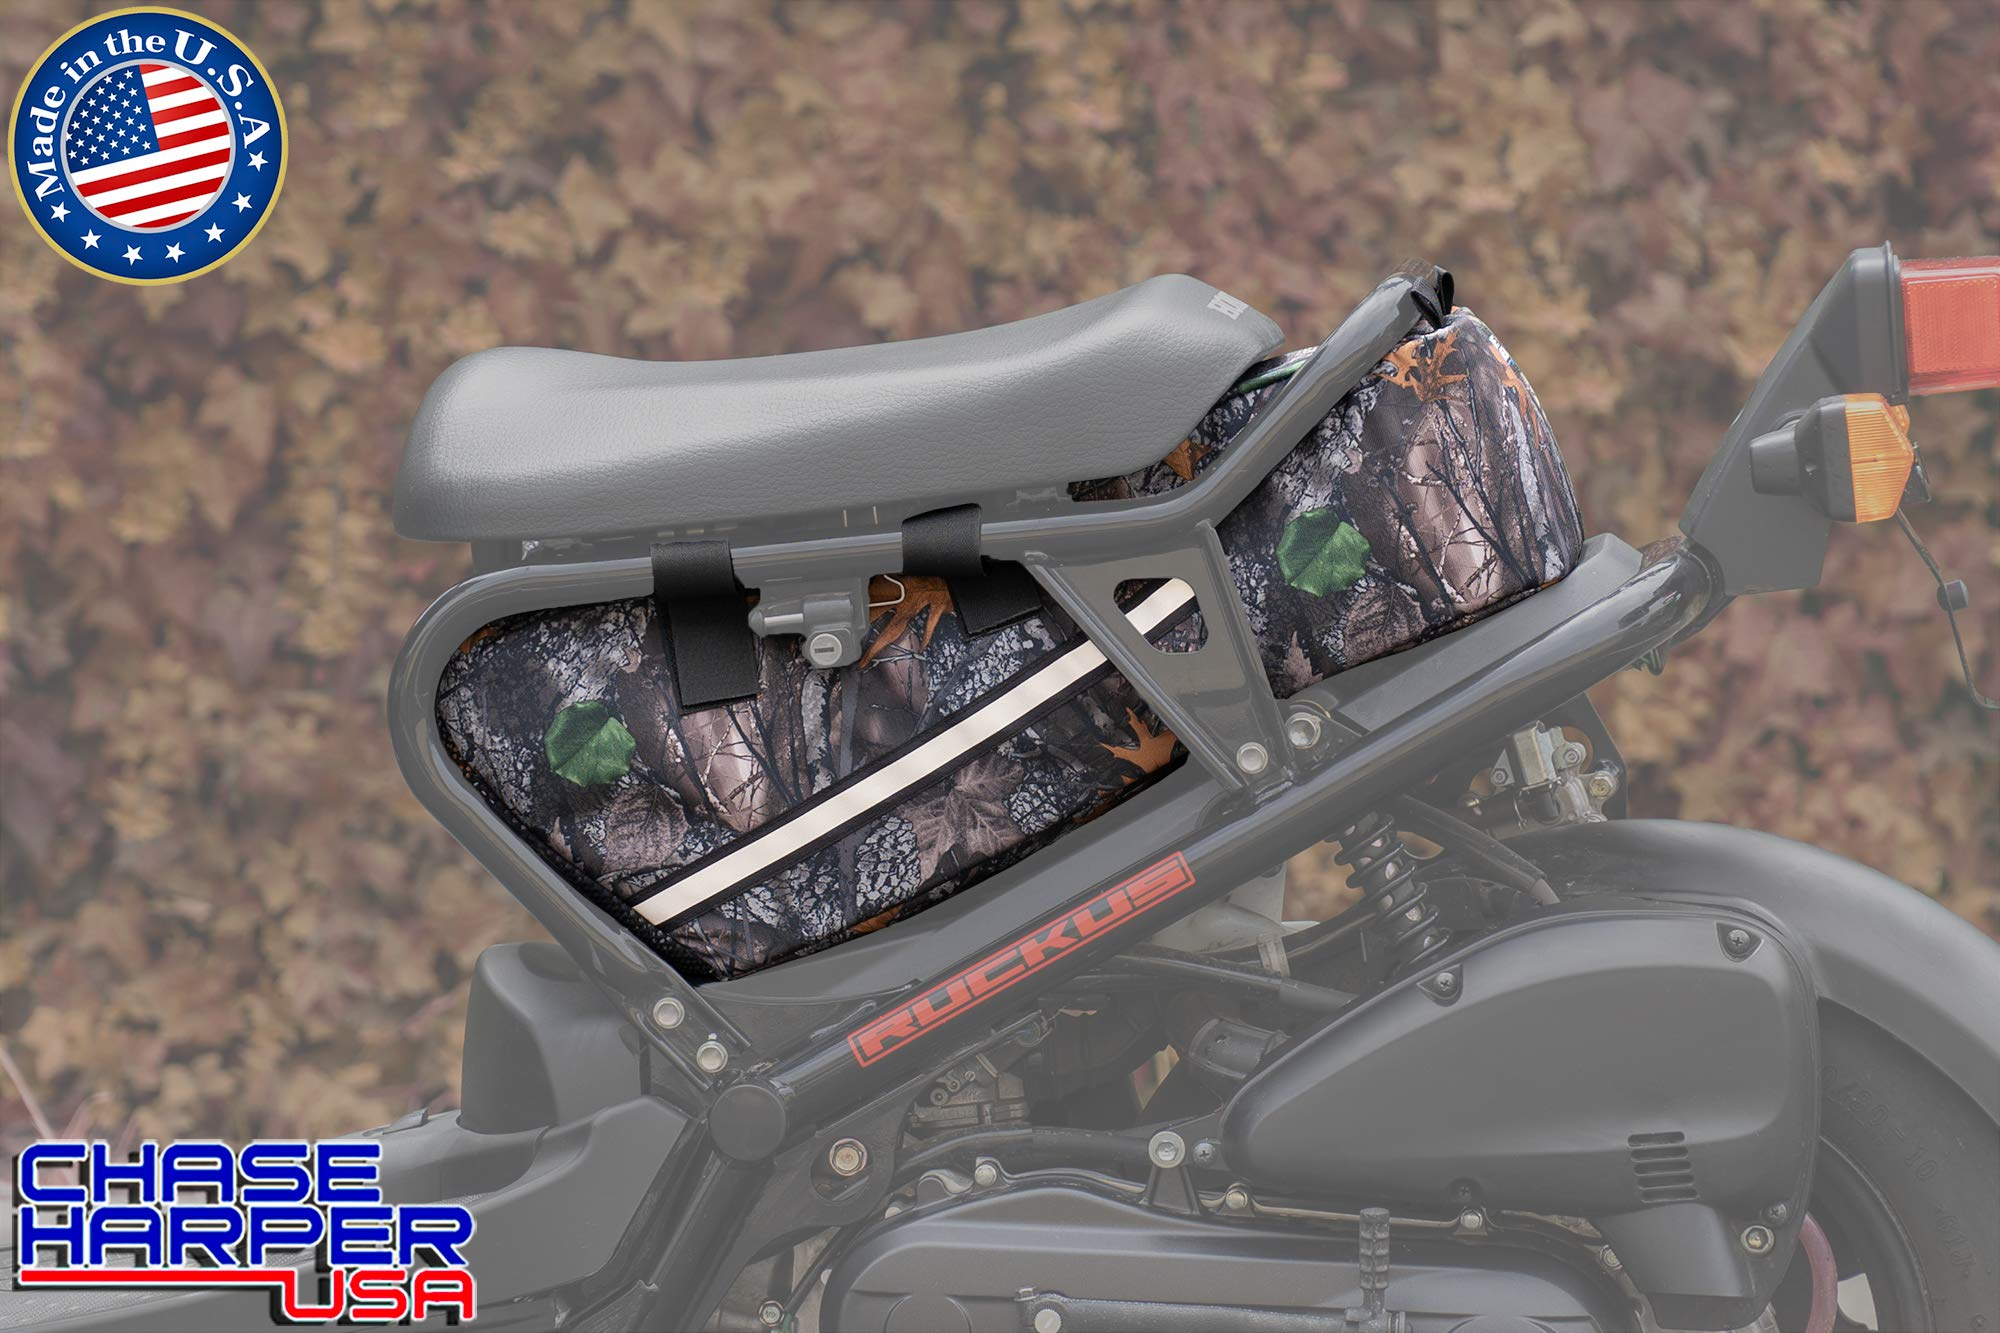 Chase Harper USA 5000 Ruckus Under the Seat Bag - Water-Resistant, Tear-Resistant, Industrial Grade Ballistic Nylon with Hook and Loop Secure Straps, 23 Liters of Storage - Backwoods Camo by Chase Harper USA